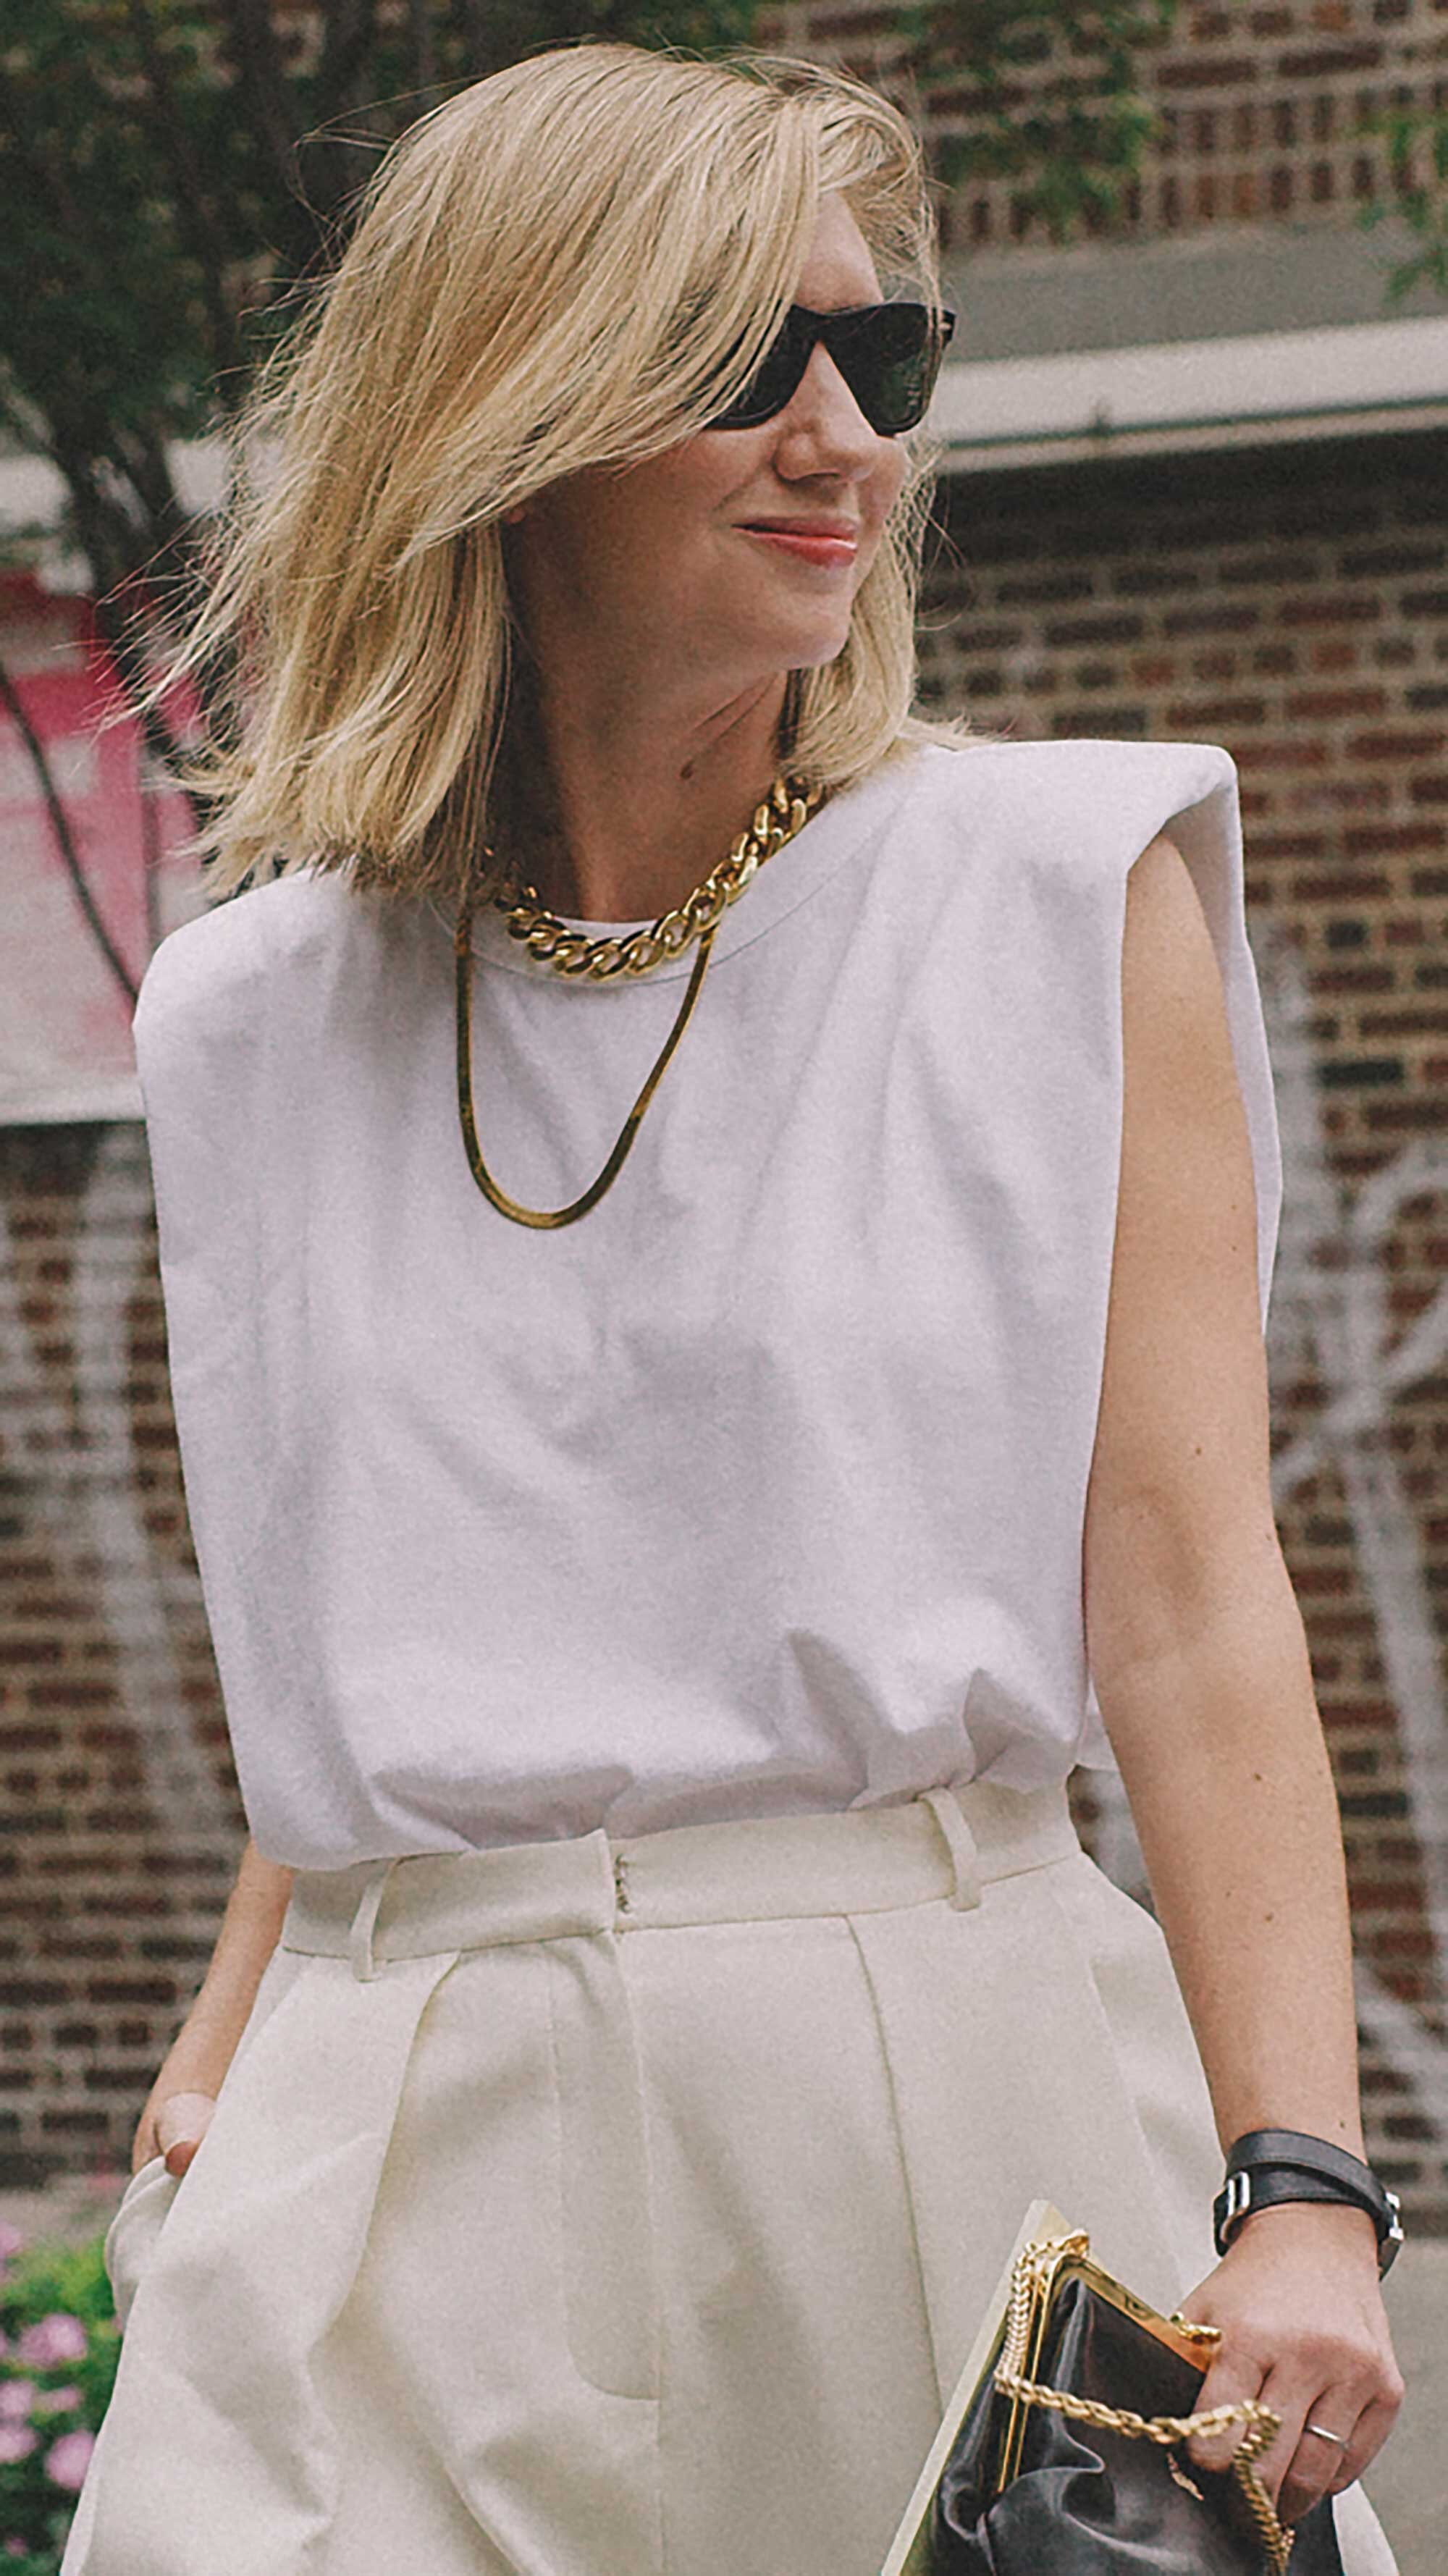 Best outfits of New York Fashion Week street style -39.jpg